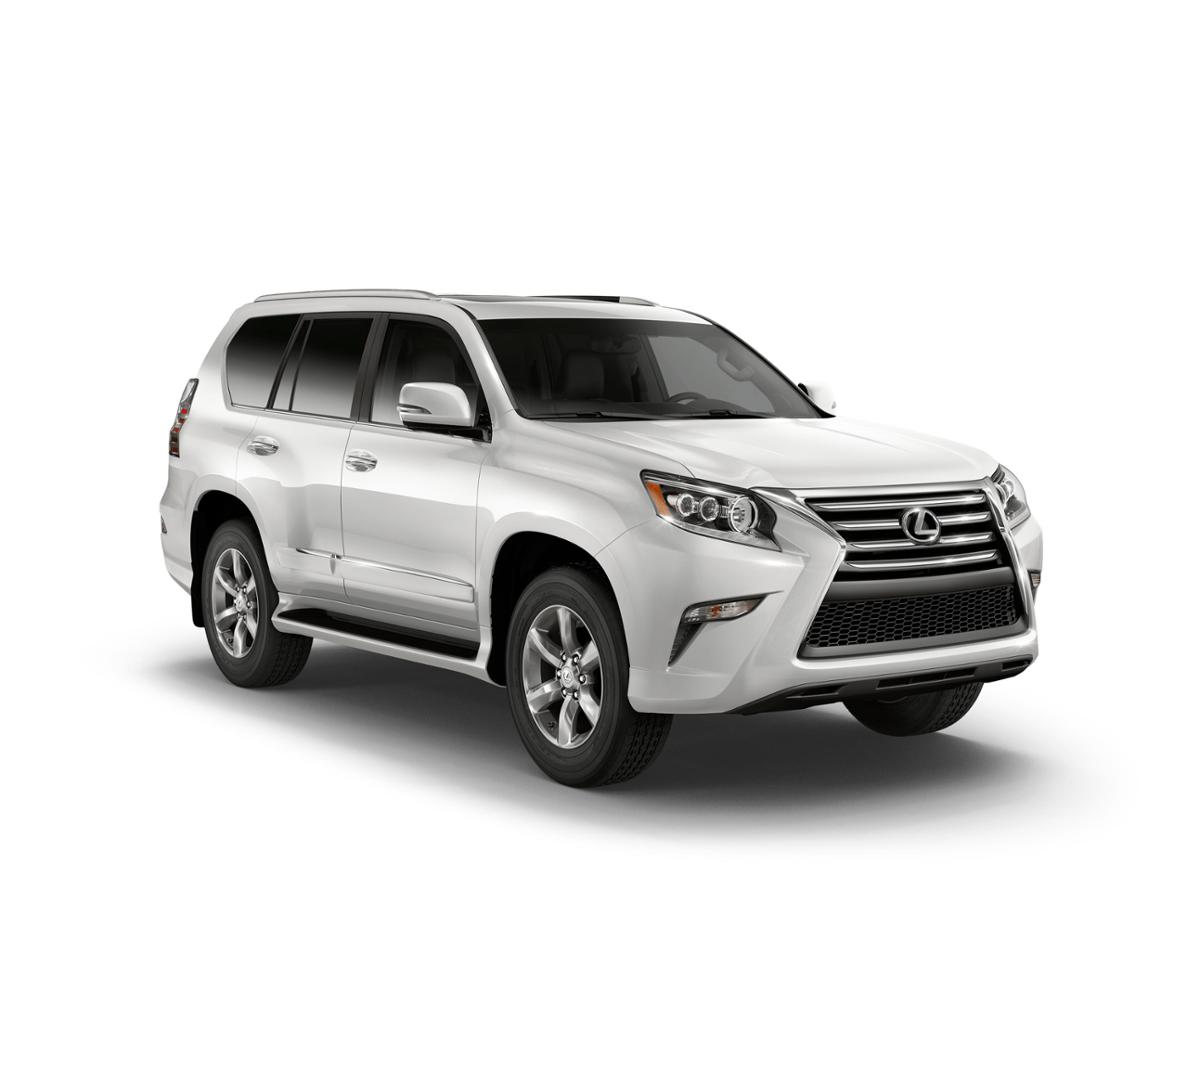 2018 Lexus GX 460 Vehicle Photo in El Monte, CA 91731